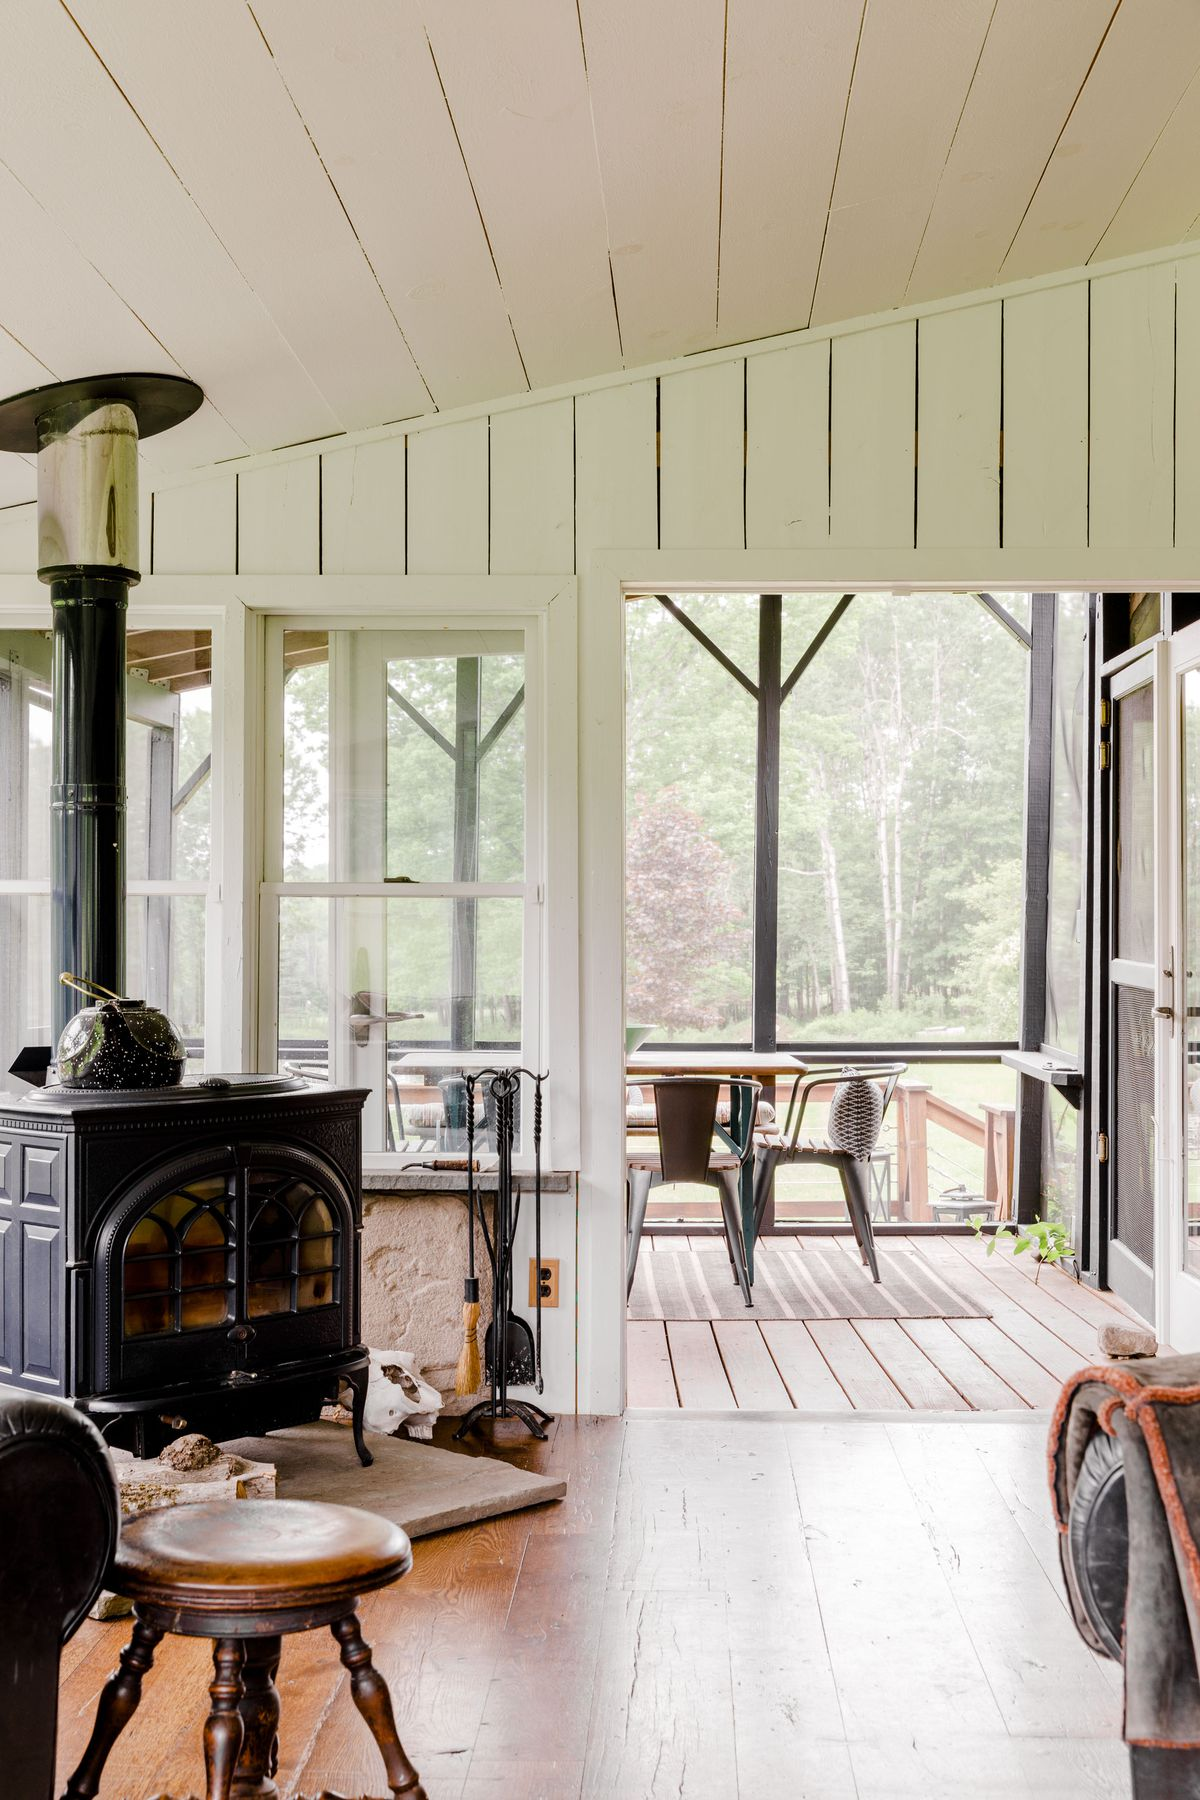 A living area with a woodstove overlooks an enclosed deck with a wall of windows overlooking a tree-lined yard